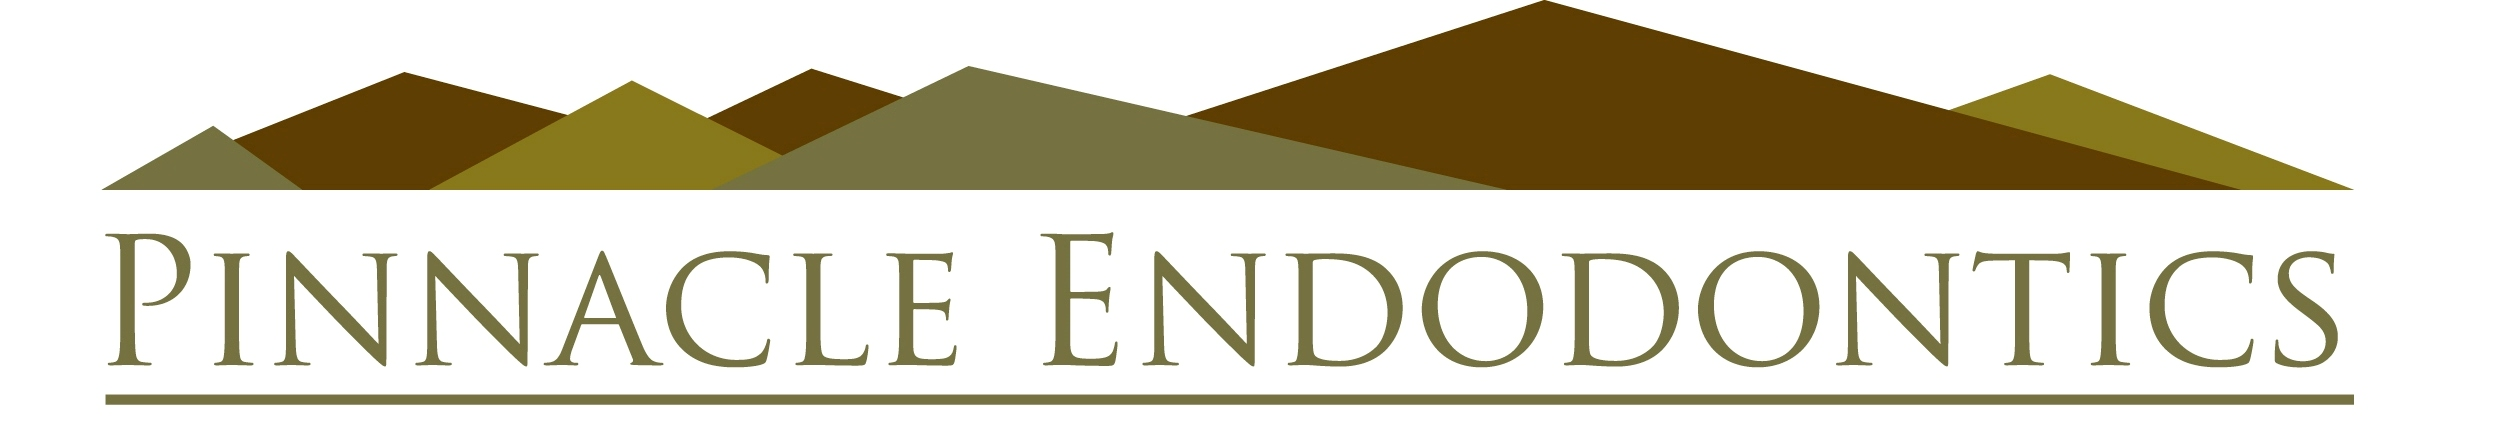 Pinnacle Endodontics